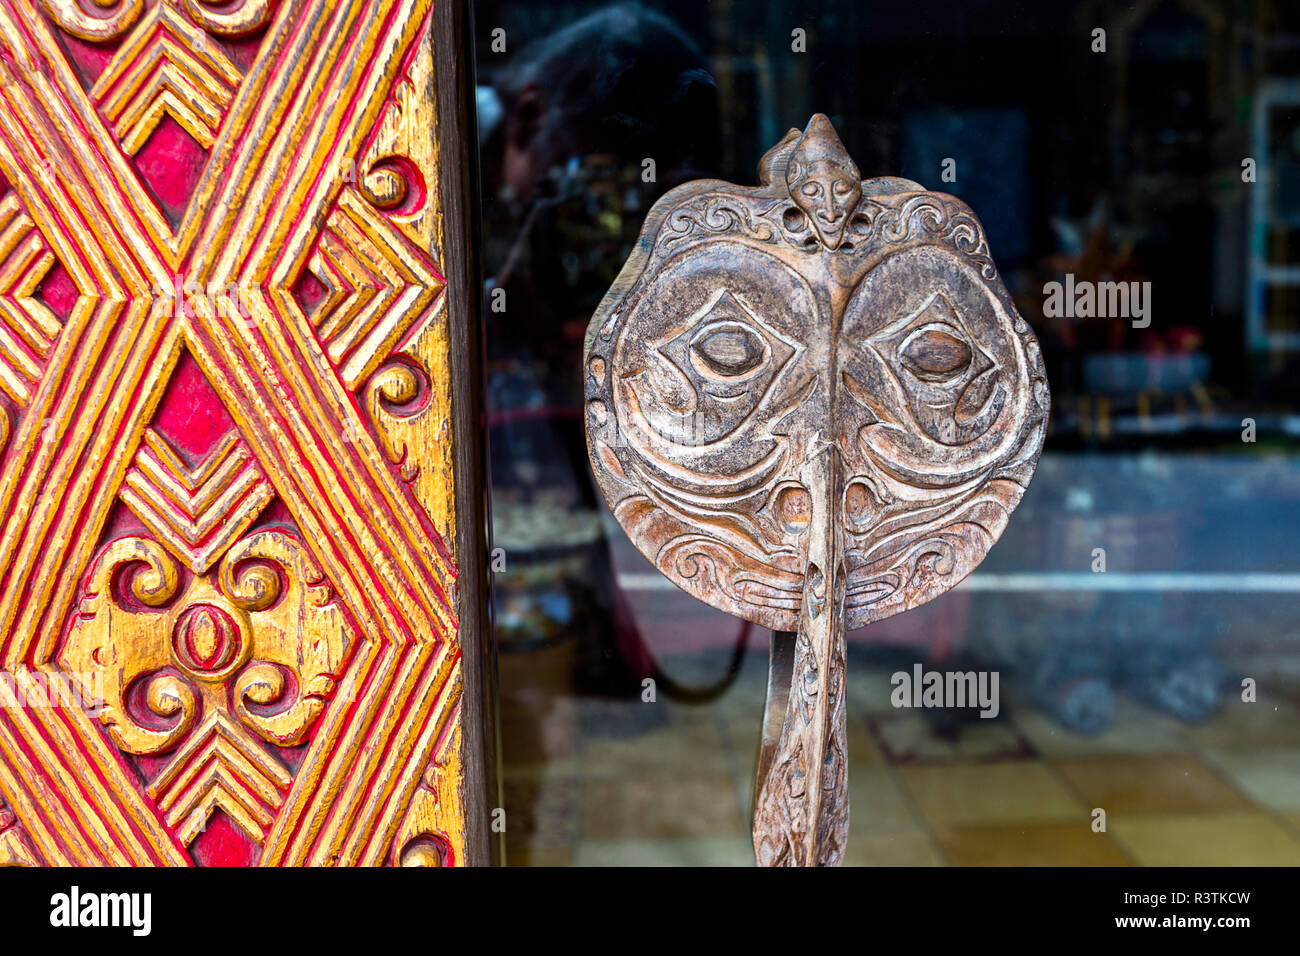 Orange and gold wood frame with a wooden carved owl handle. - Stock Image